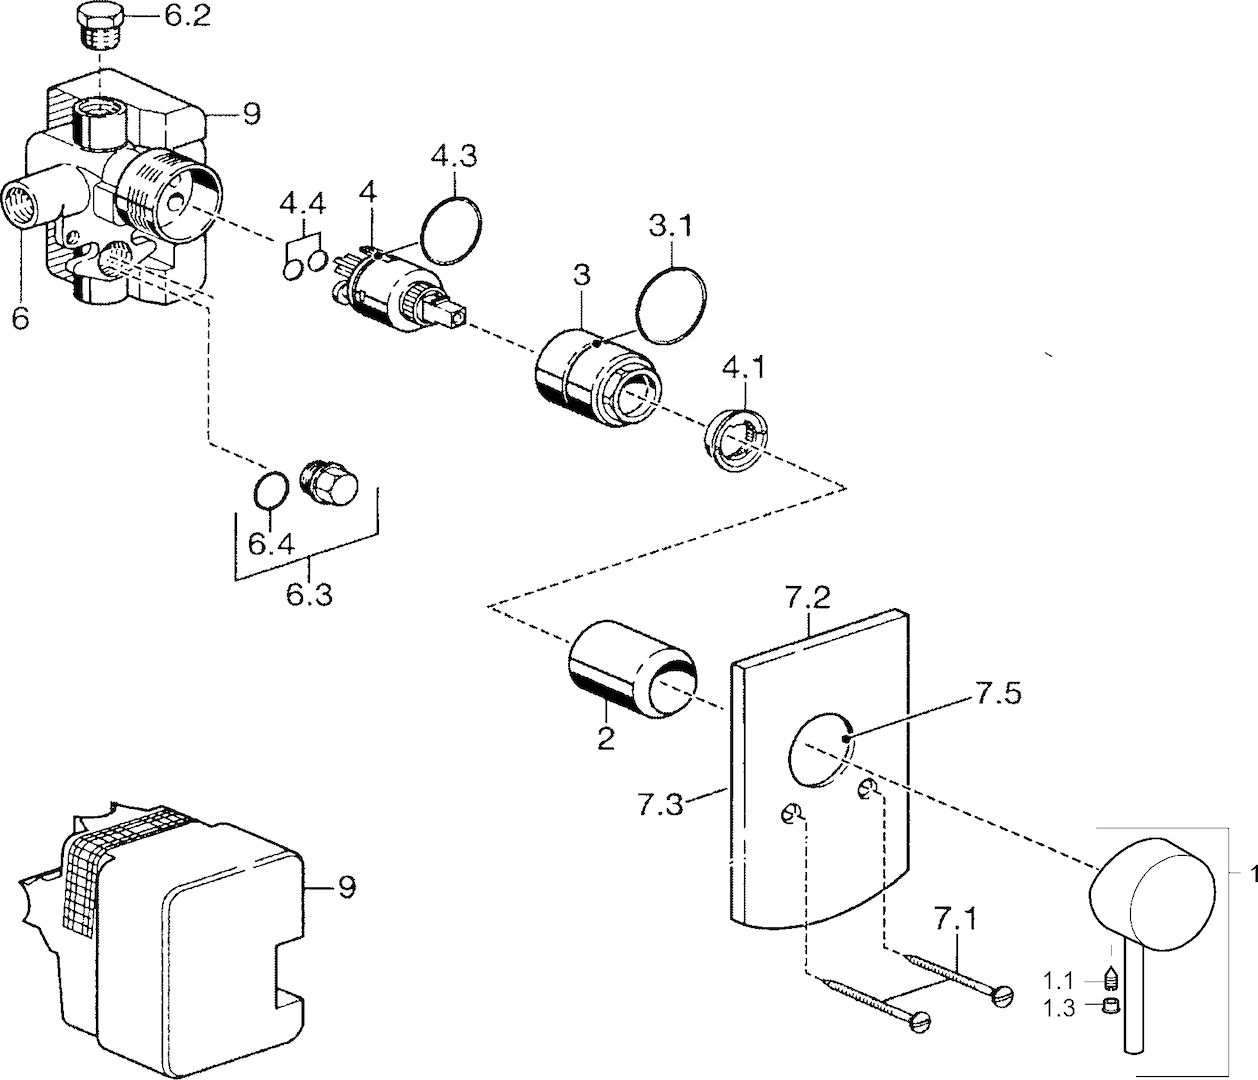 hight resolution of sp52610107 cover part for shower faucet